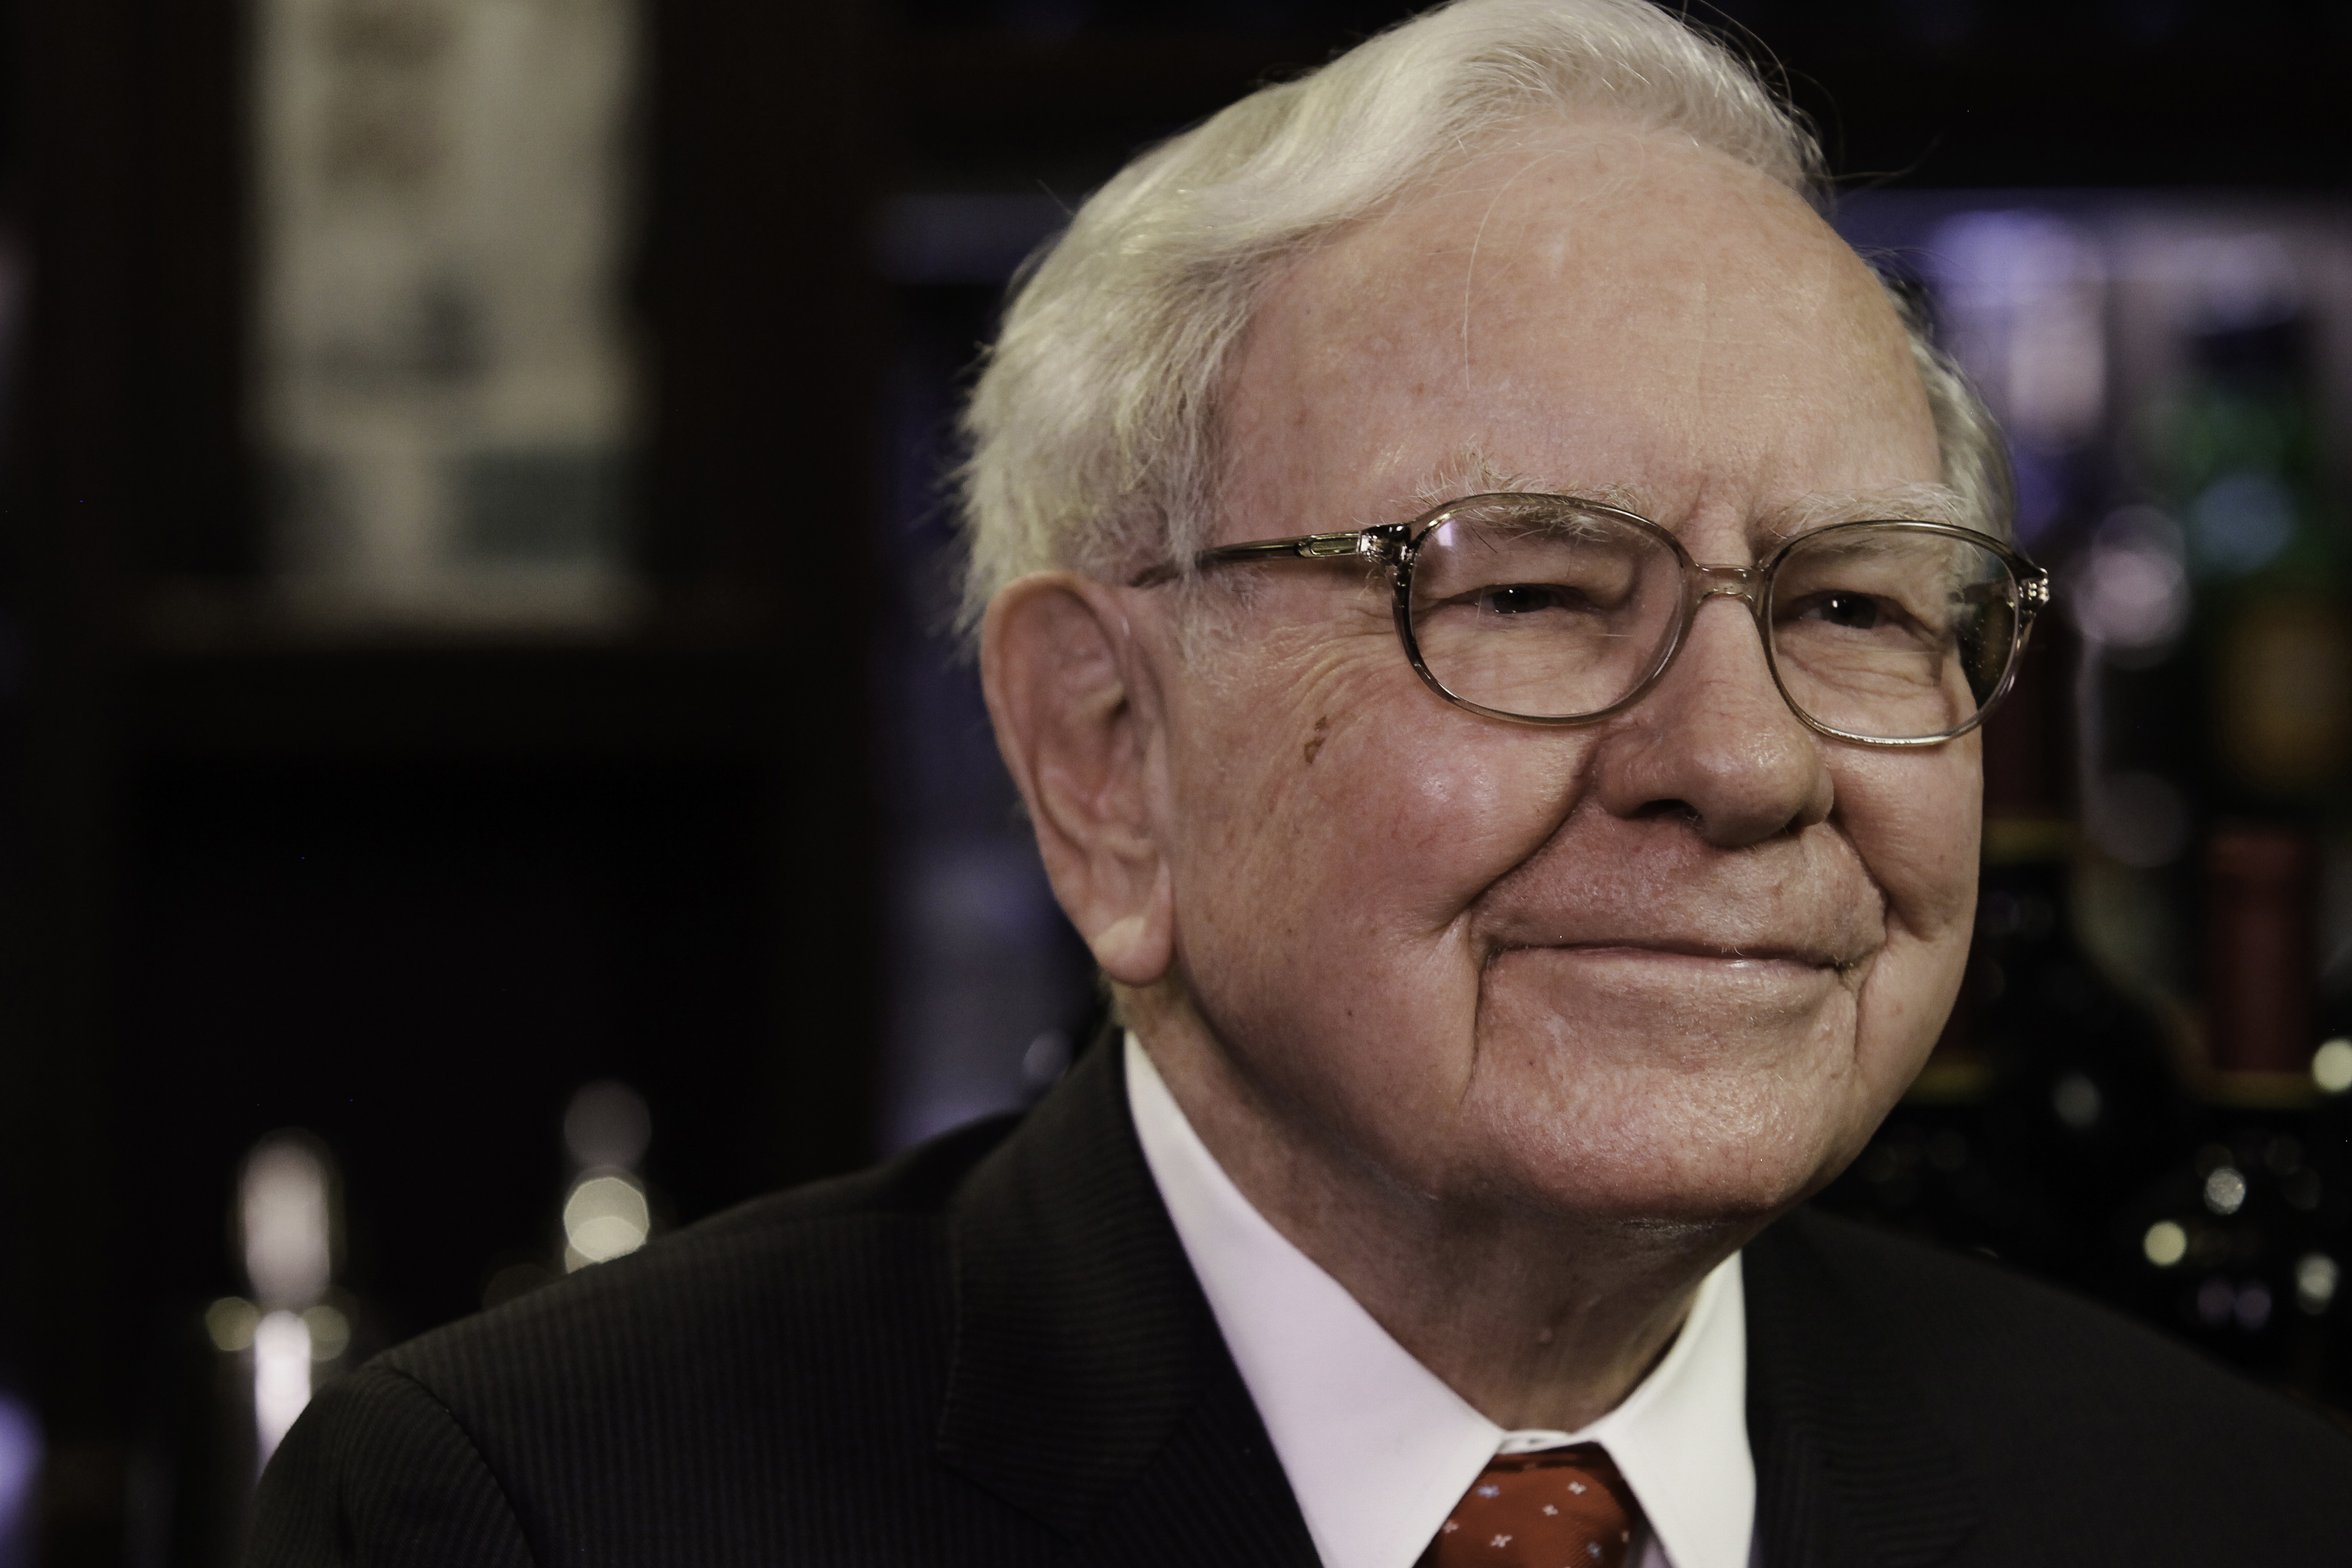 Warren Buffett, chairman and chief executive officer of Berkshire Hathaway Inc., during an interview in New York City on Sept. 8, 2015.